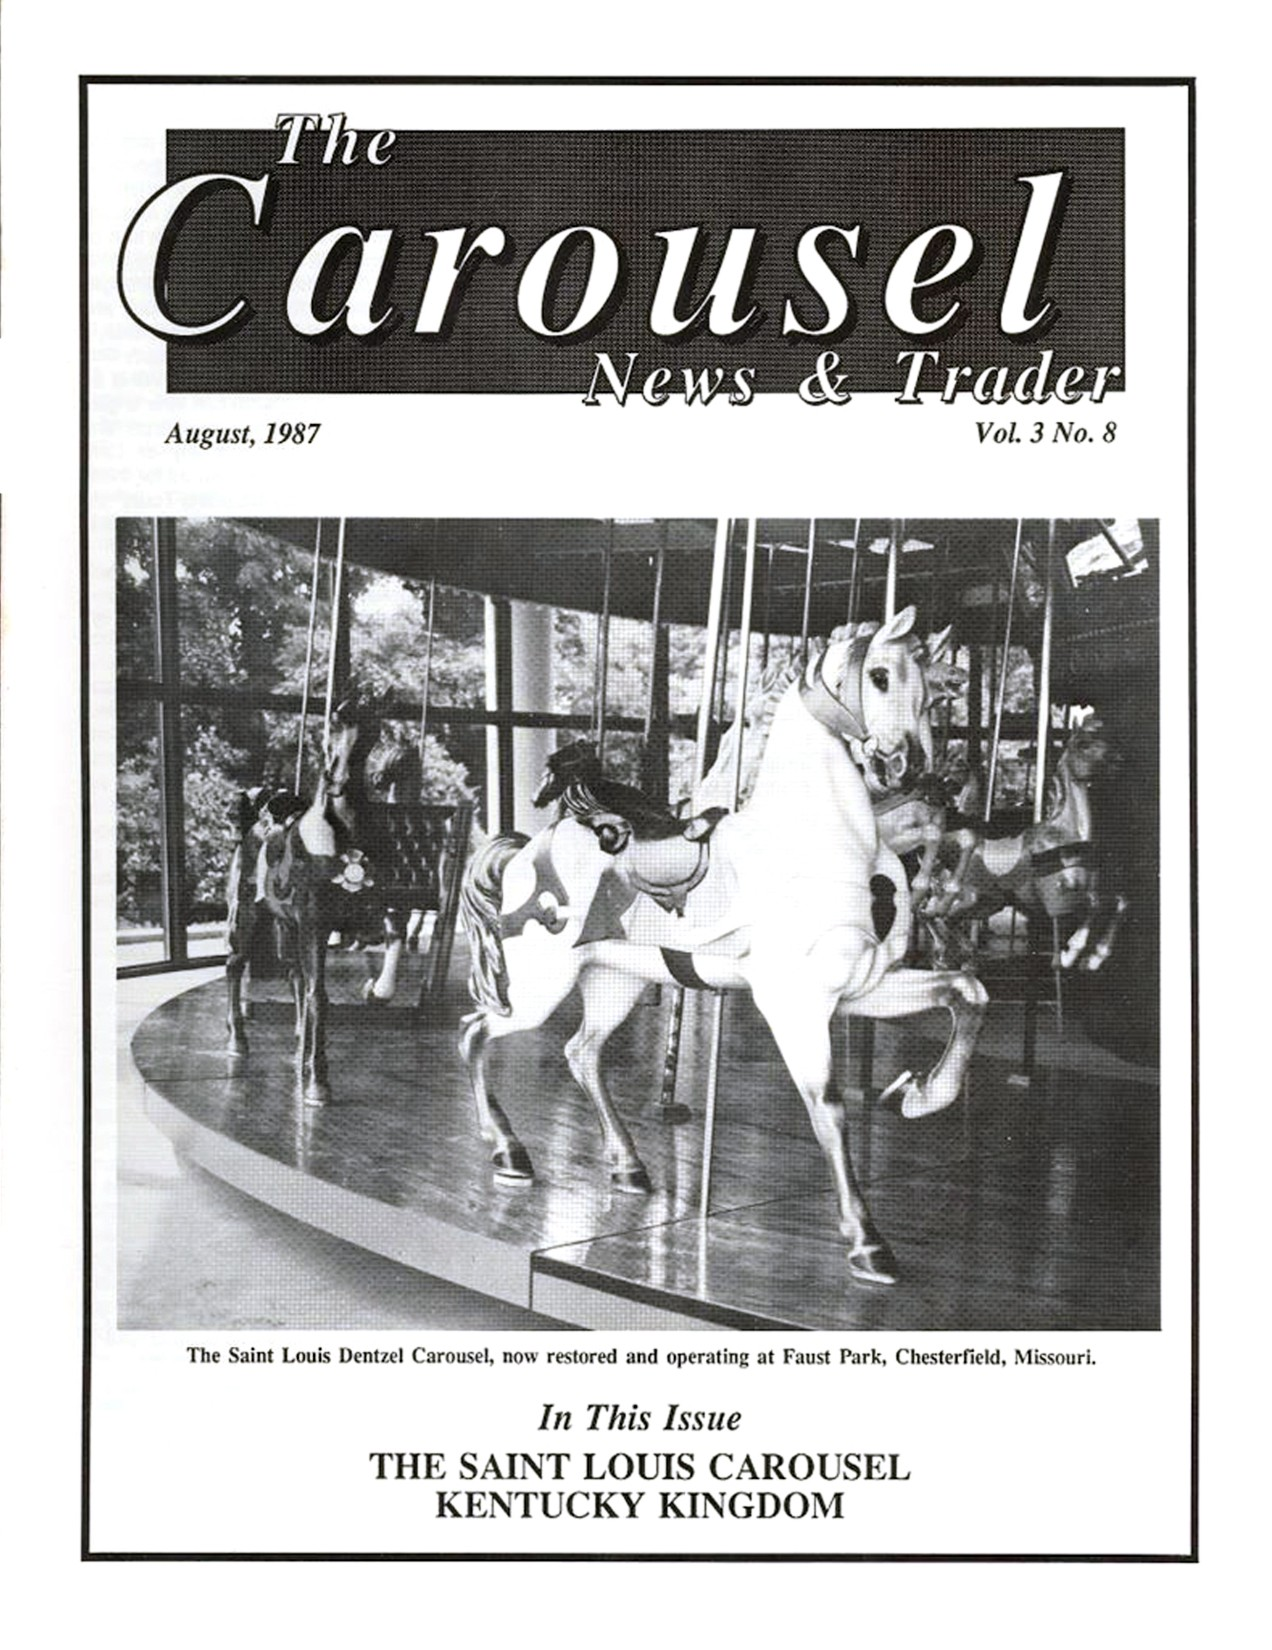 Carousel-News-cover-08_1987-Faust-Park-St-Louis-Dentzel